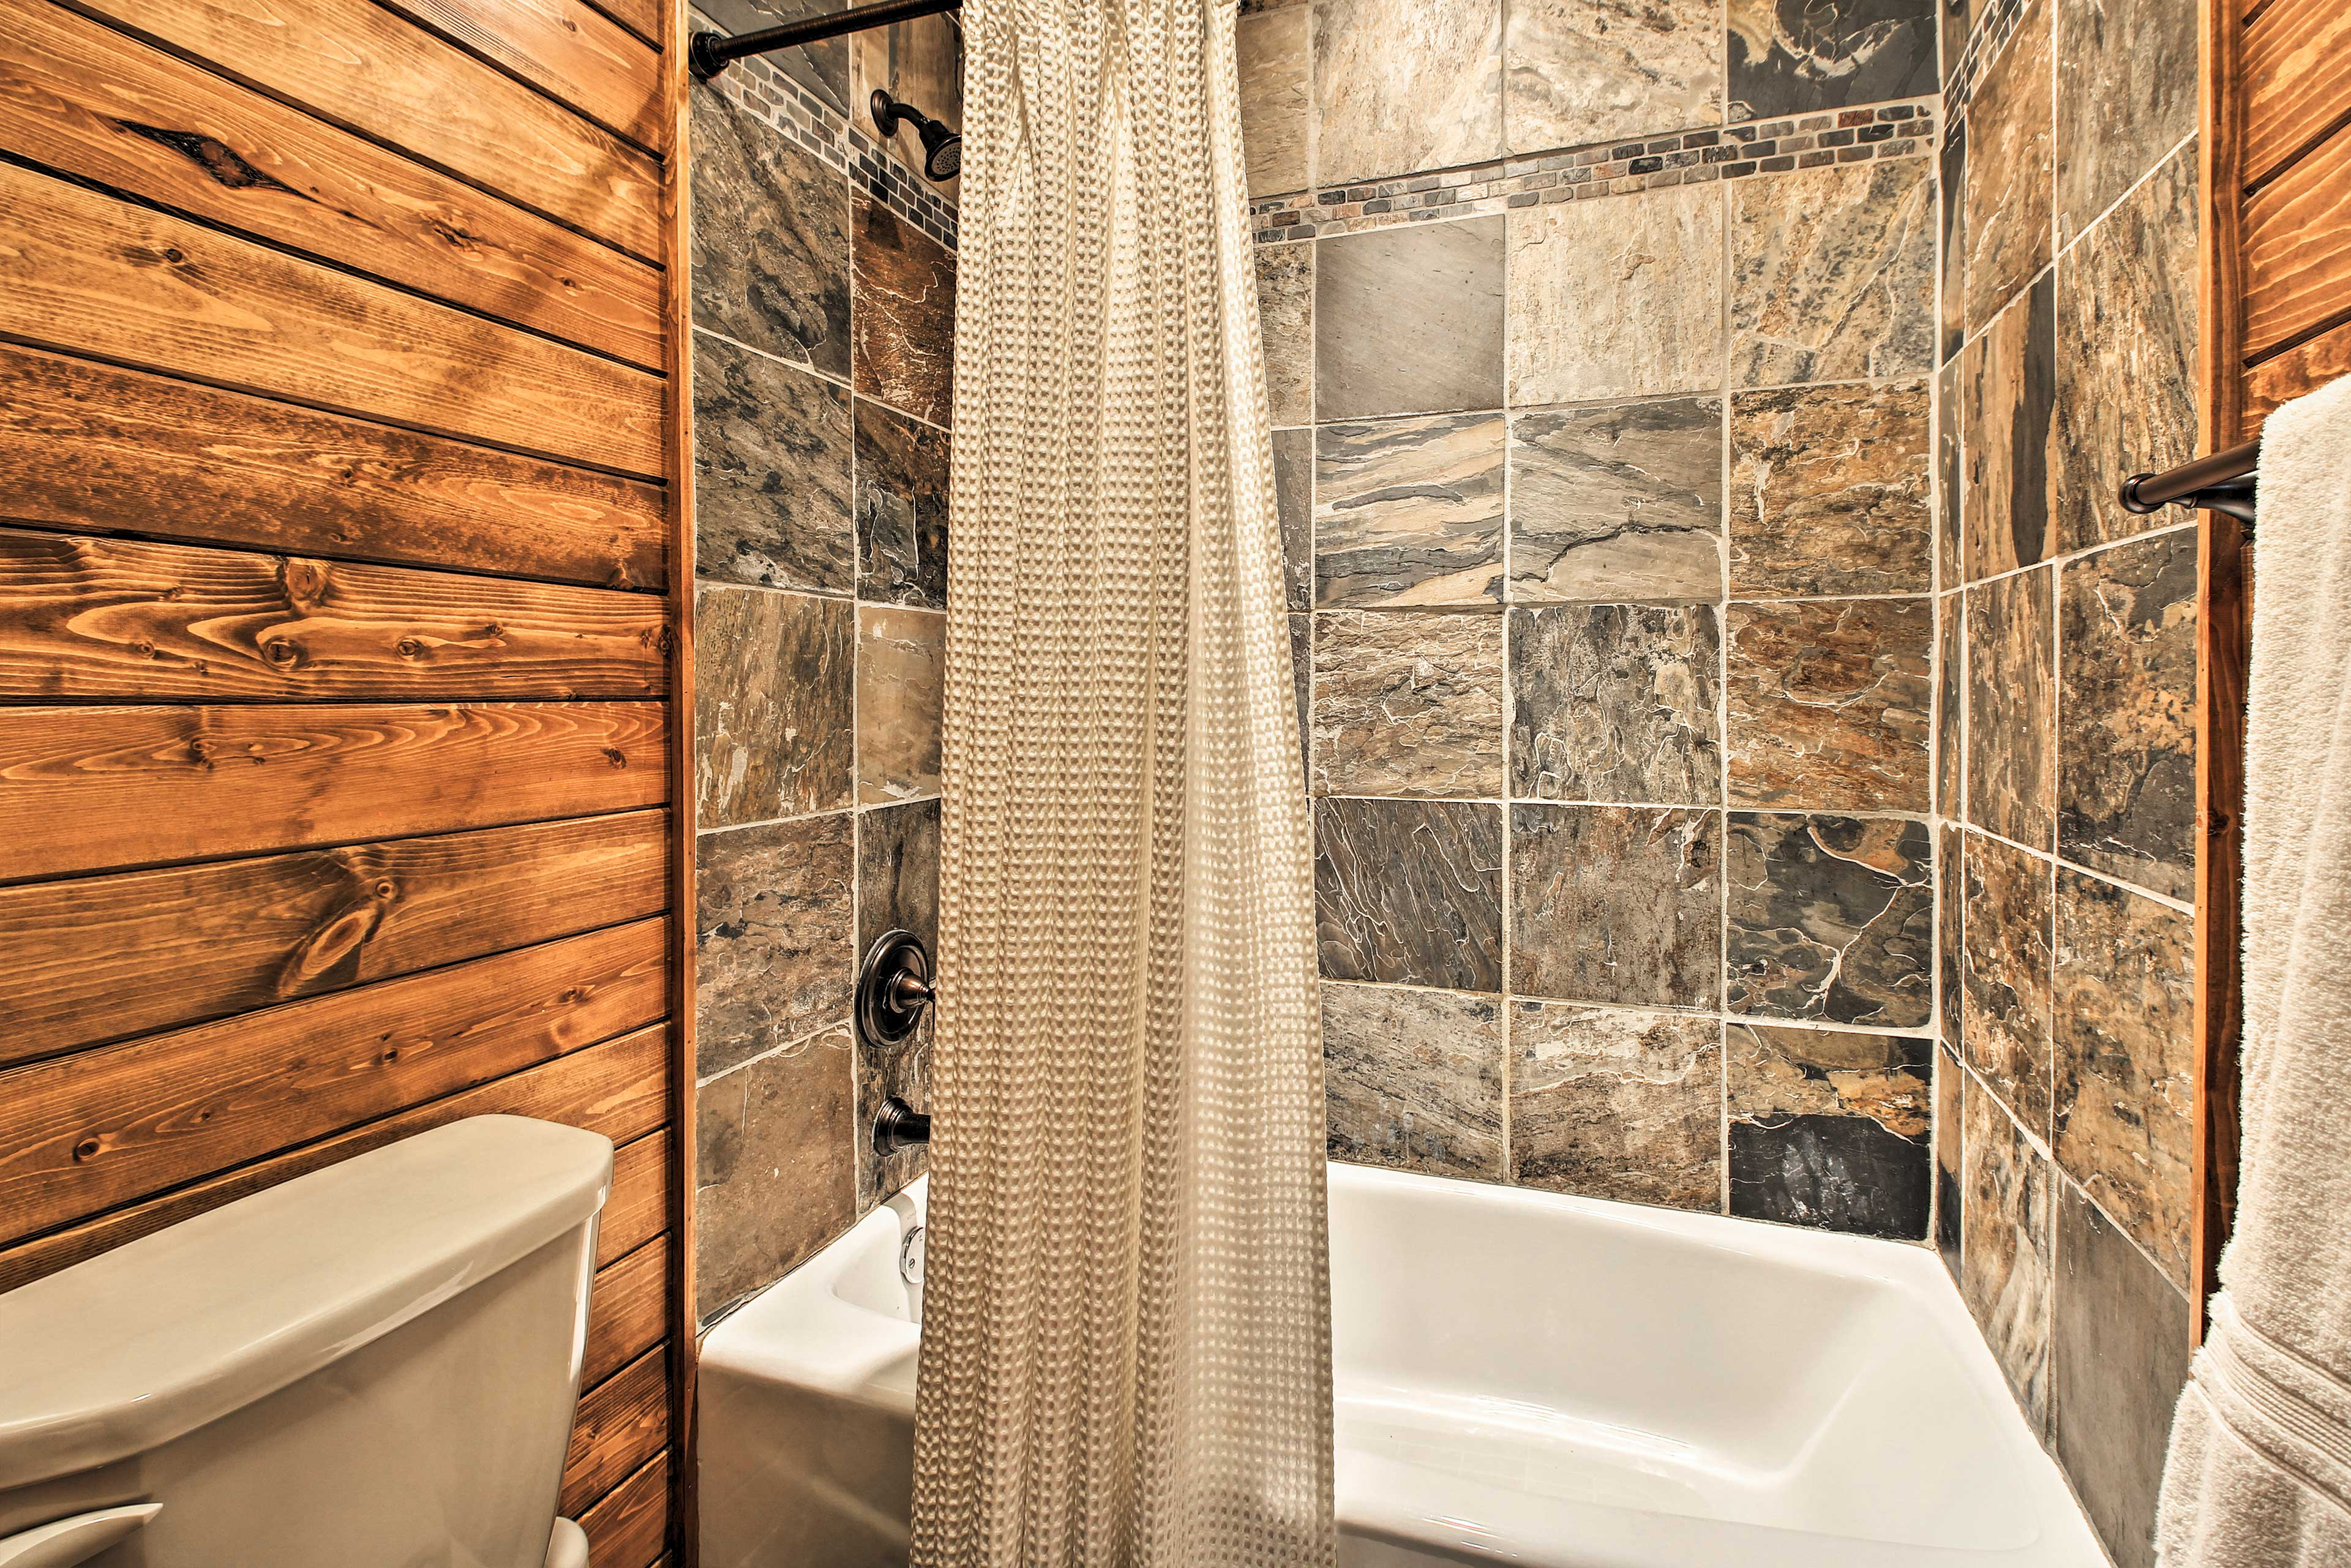 Enjoy a slow start to the day in the soaking tub.